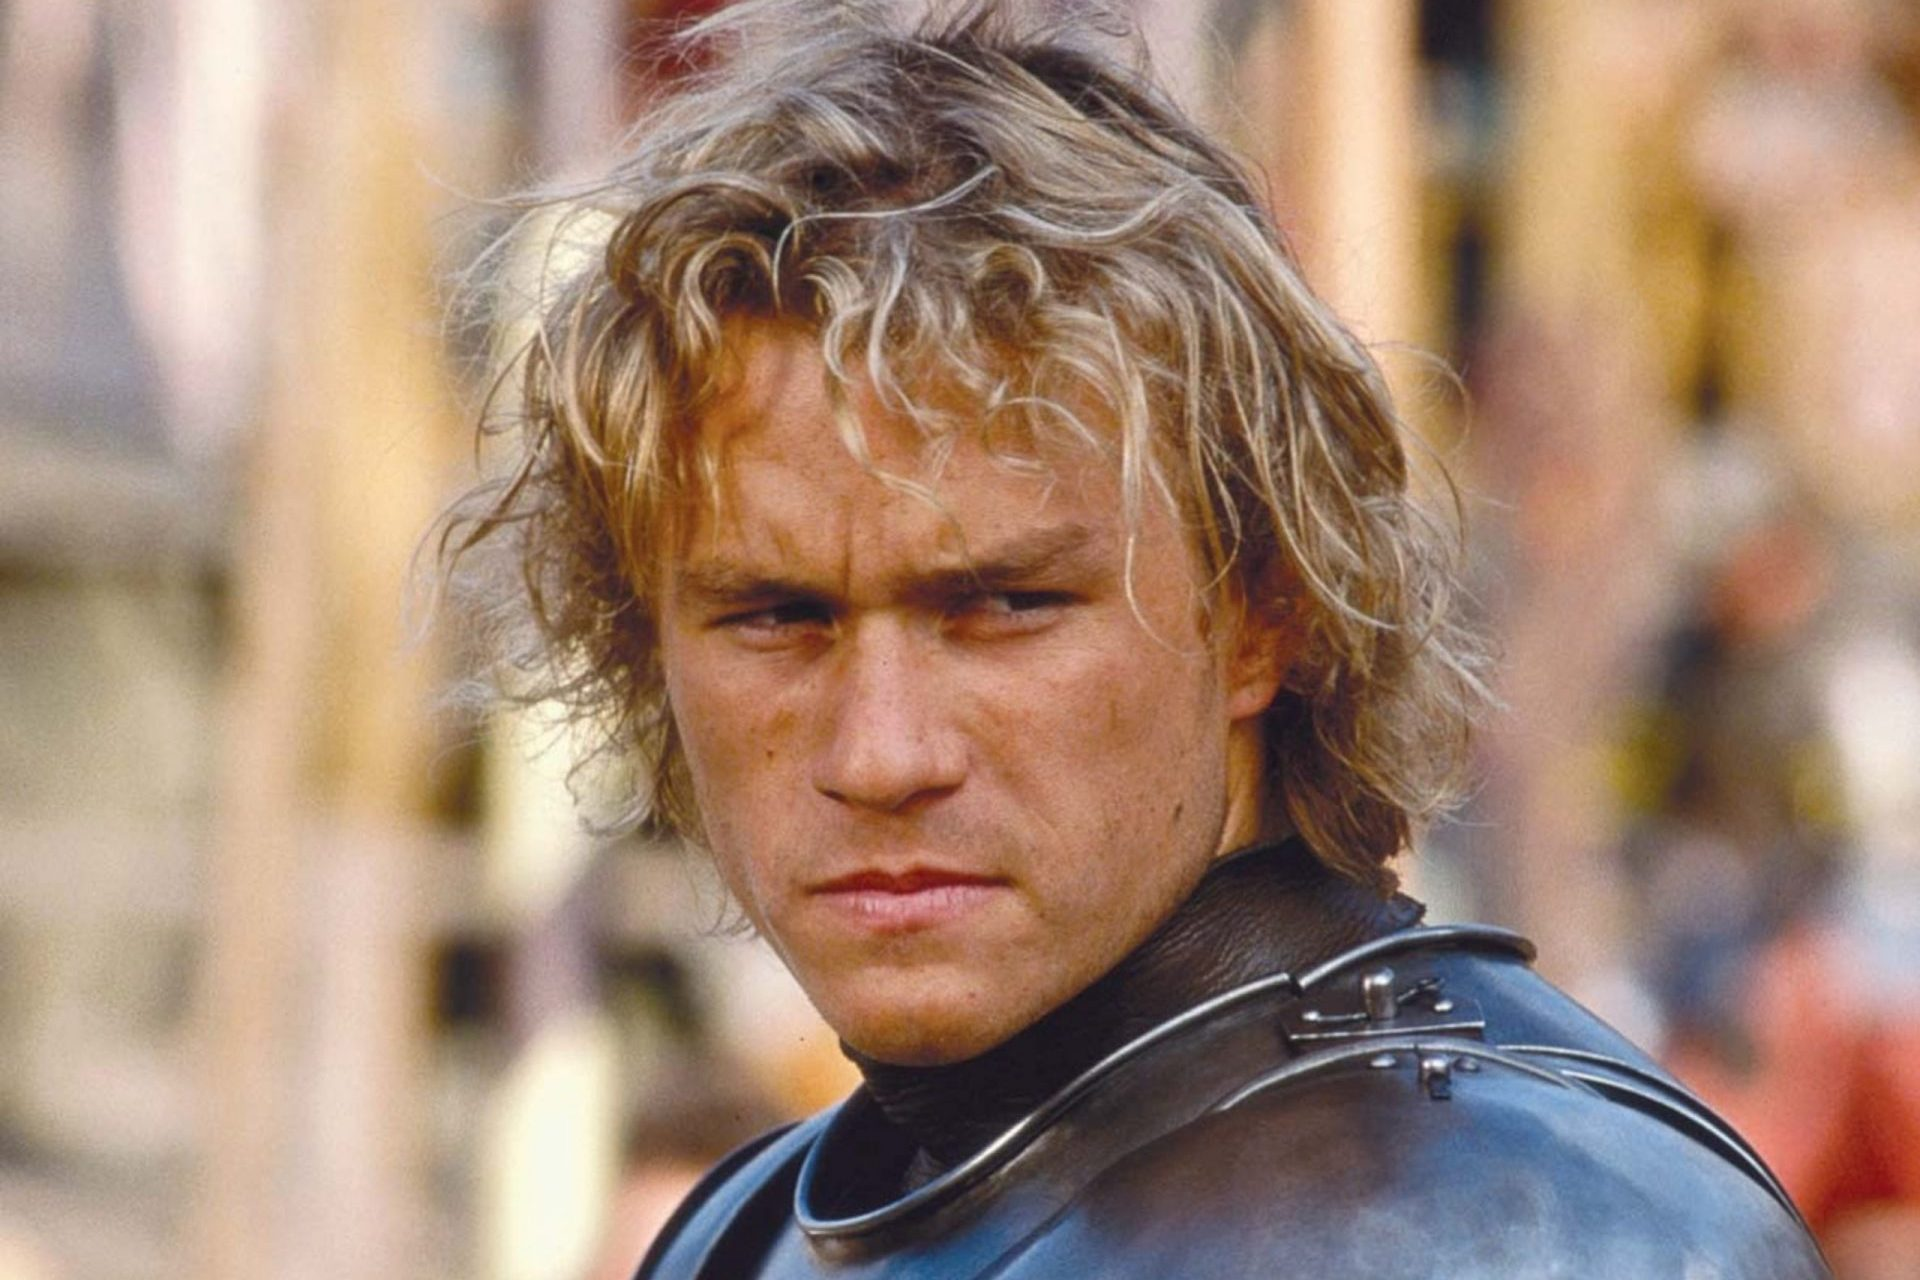 Heath Ledger and other stars who died young and tragically